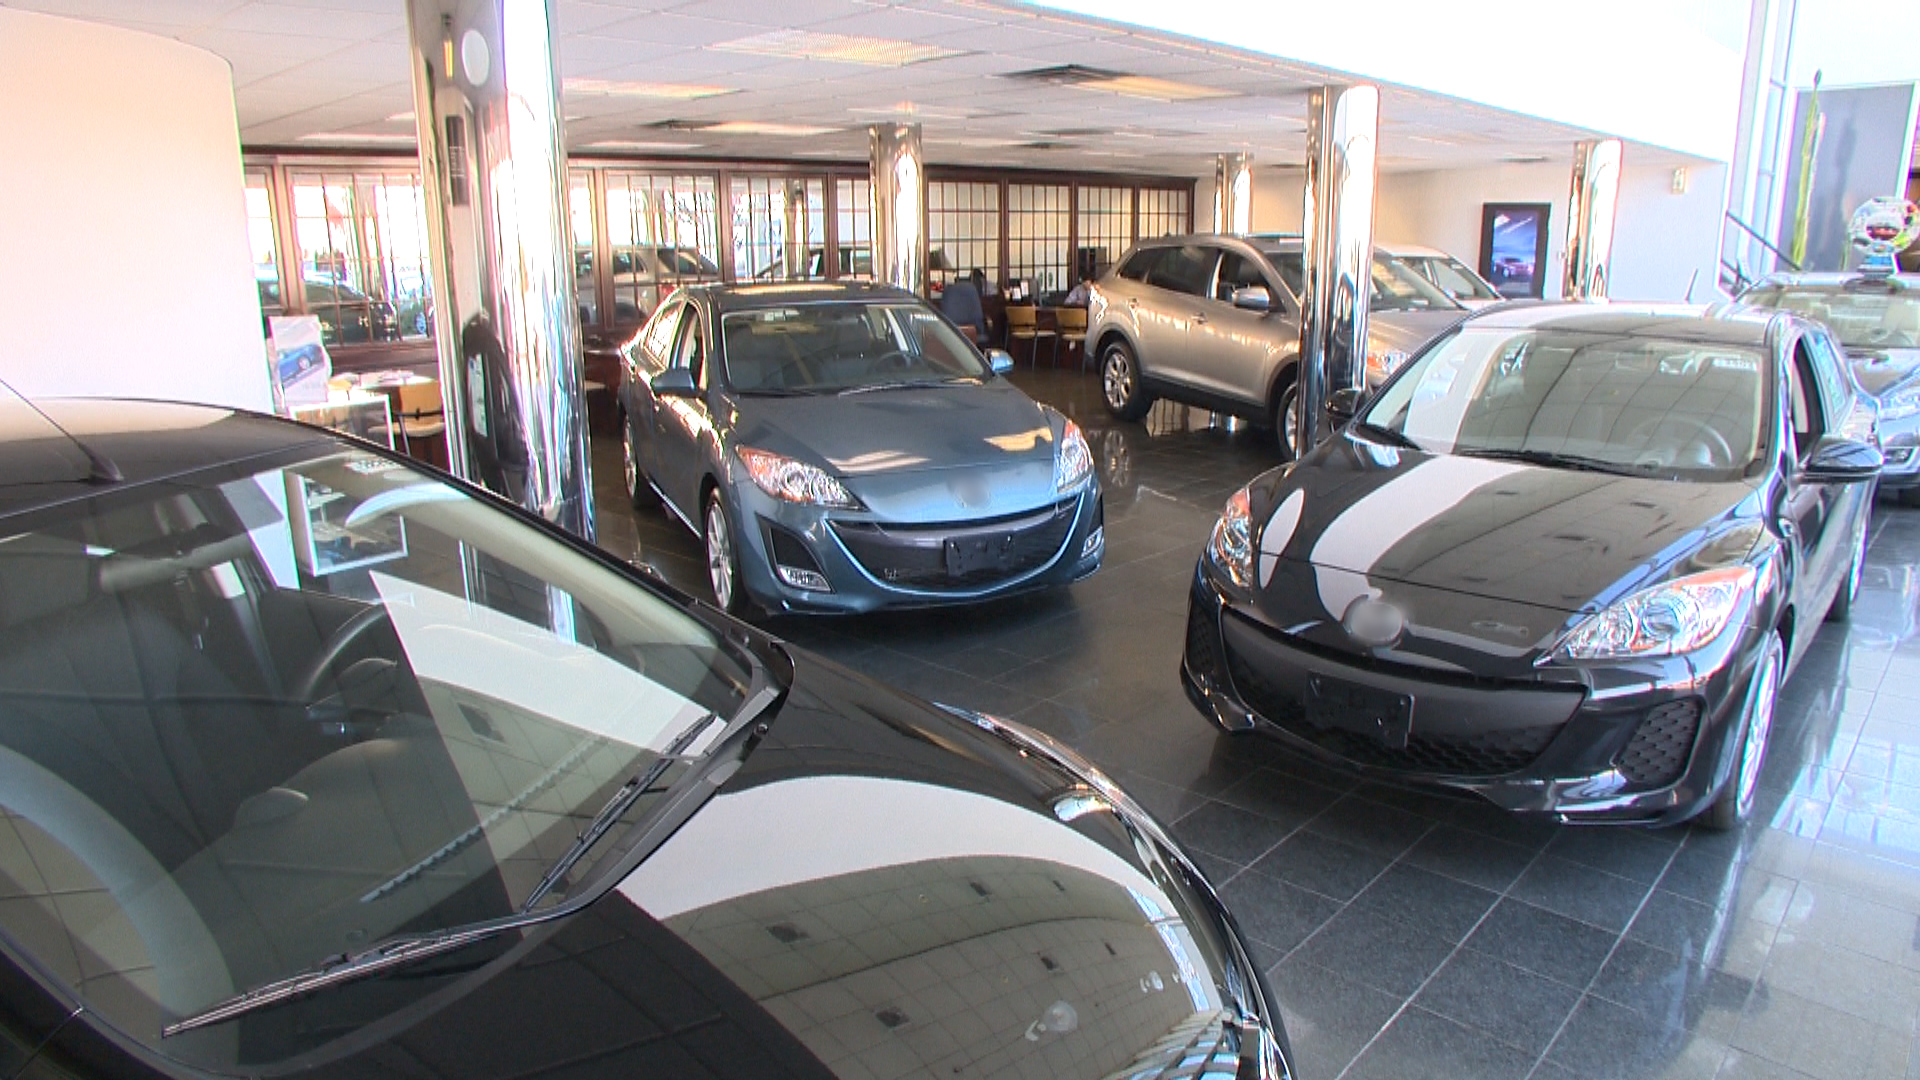 How to choose a used car: tips from motorists and experts 74